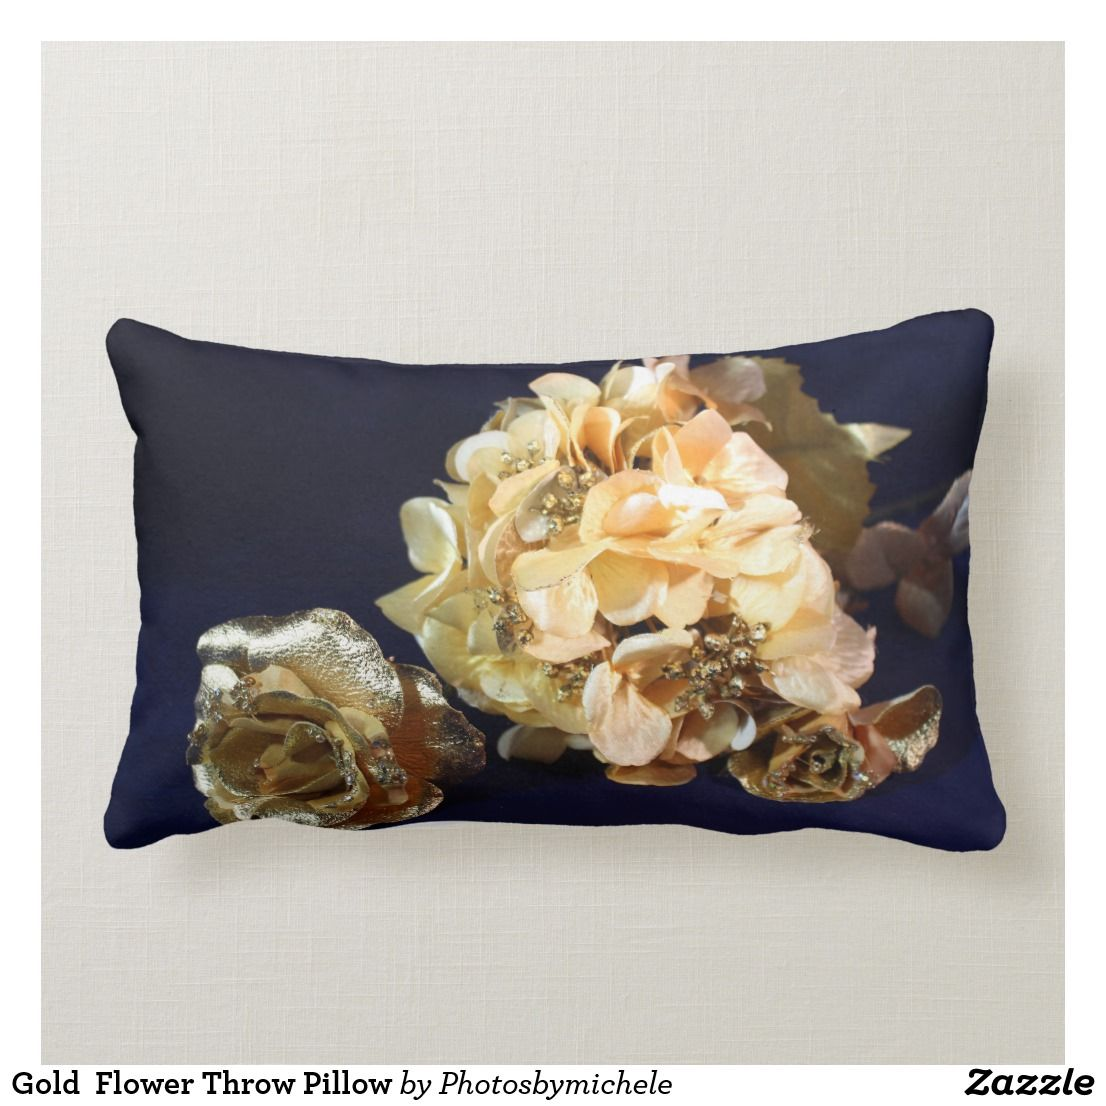 Gold Flower Throw Pillow Flower Throw Pillows Throw Pillows